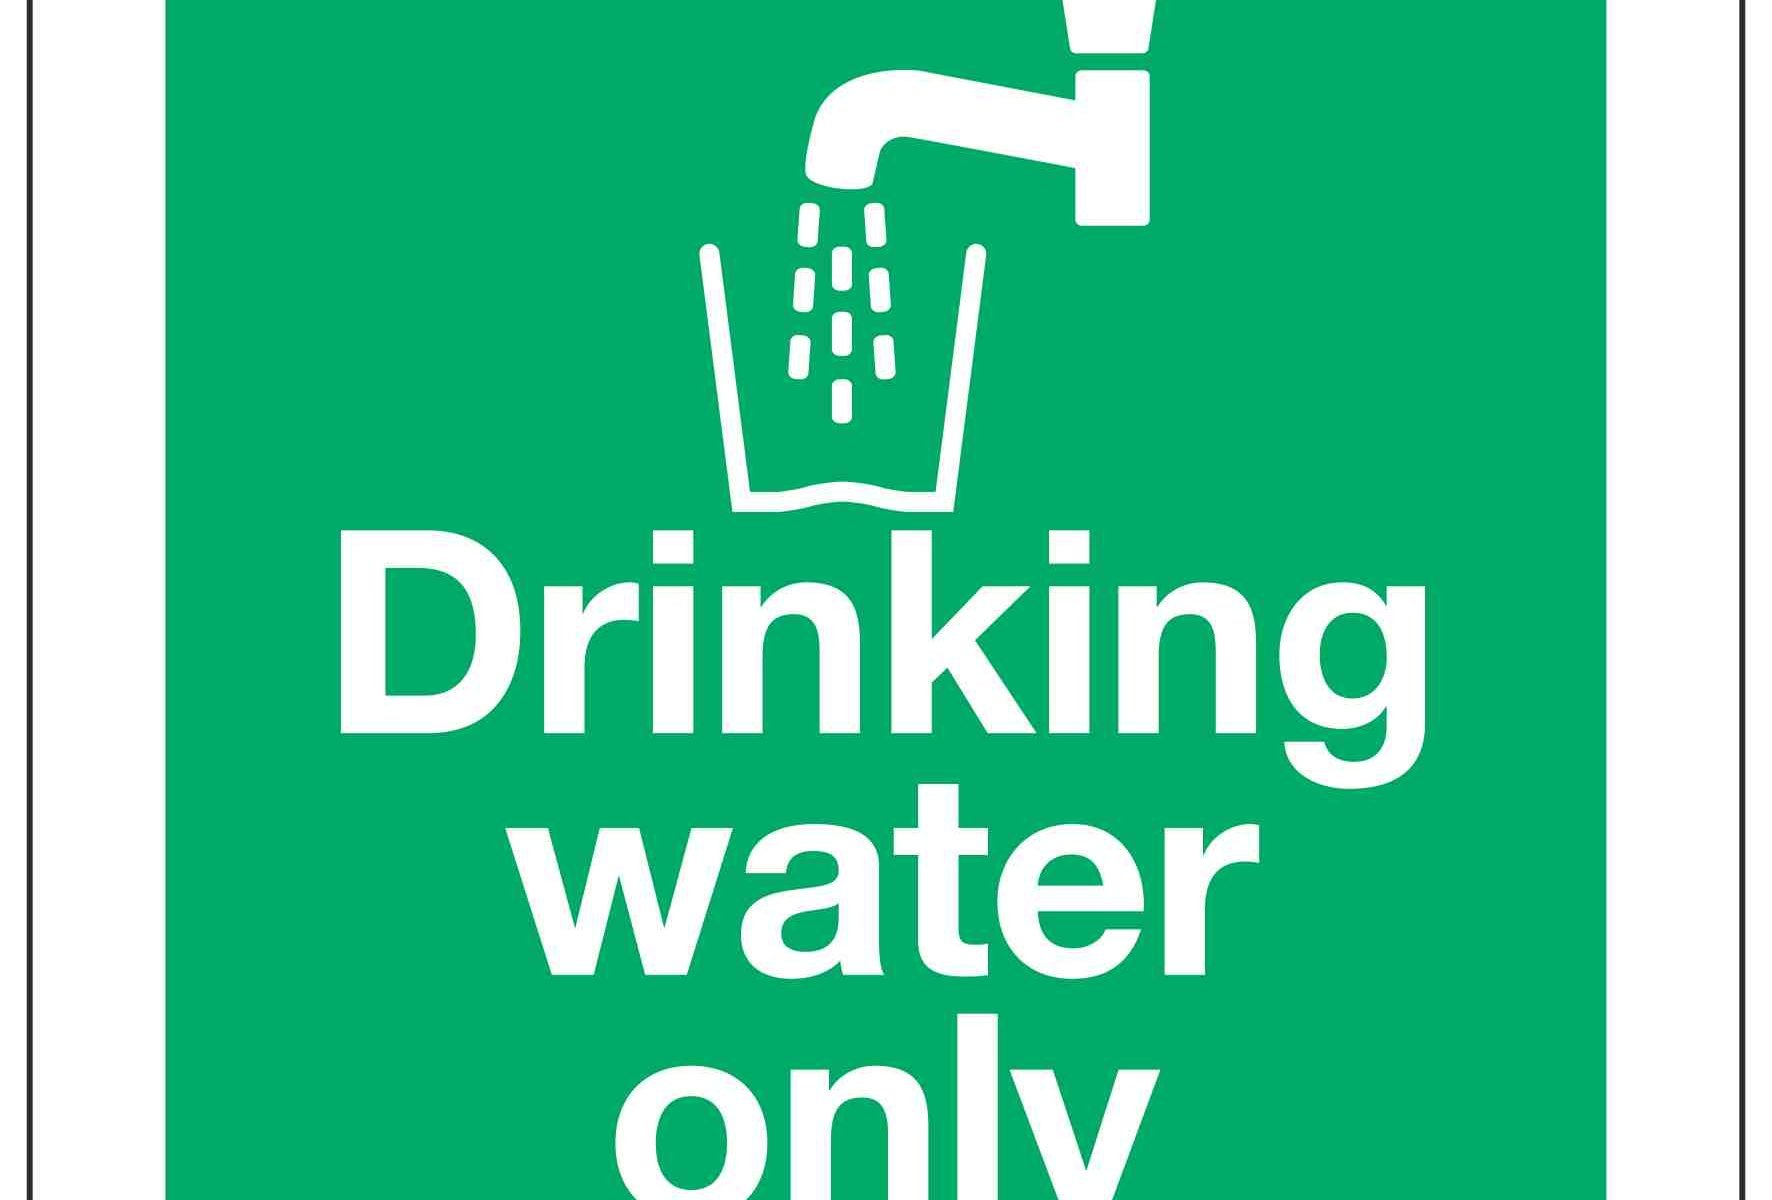 Drinking water only